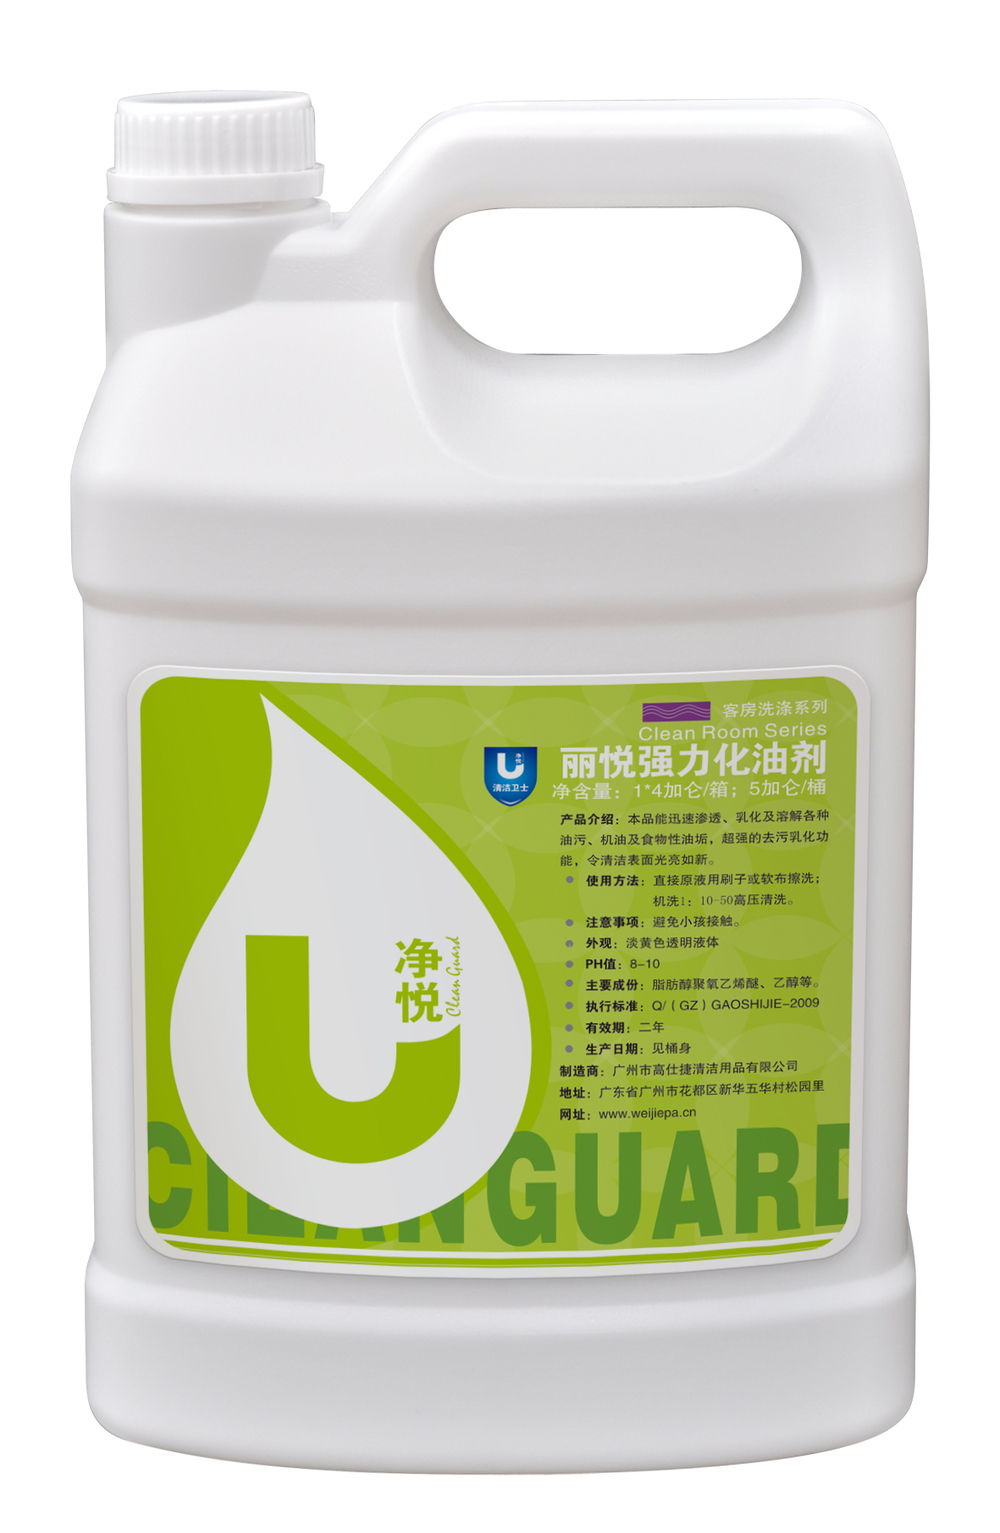 1 gallon packing washing liquid for kitchen on sale